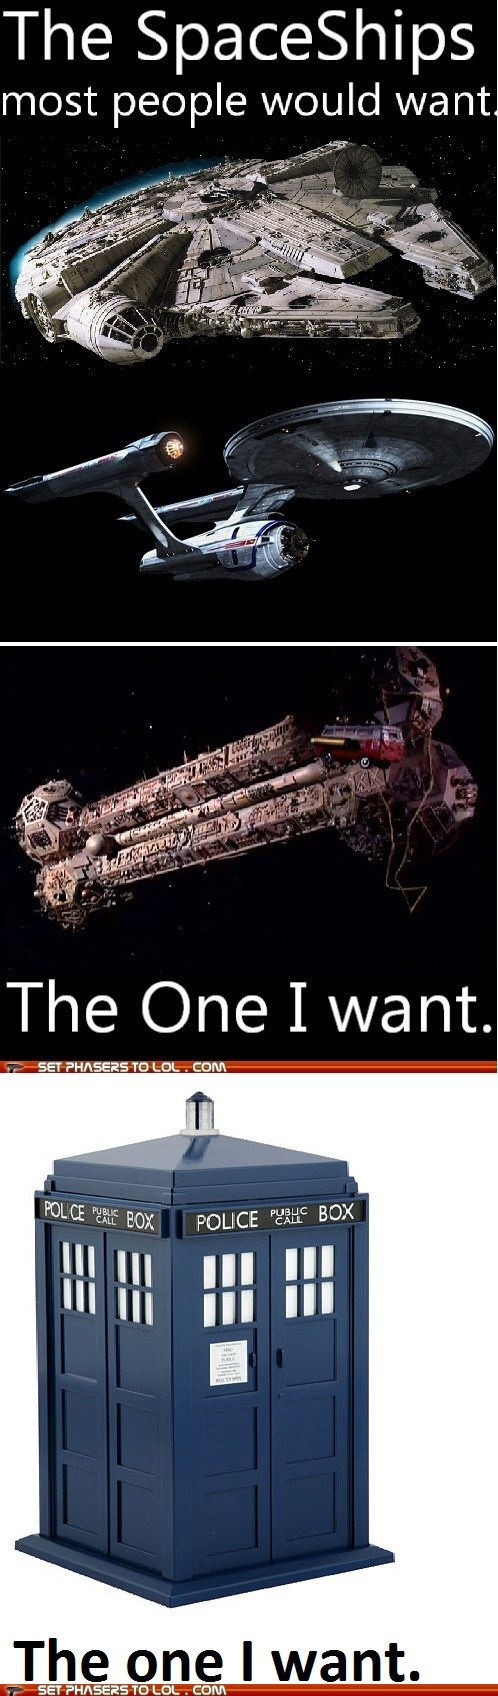 doctor who,enterprise,millennium falcon,mystery science theater,satellite of love,spaceships,Star Trek,star wars,tardis,want